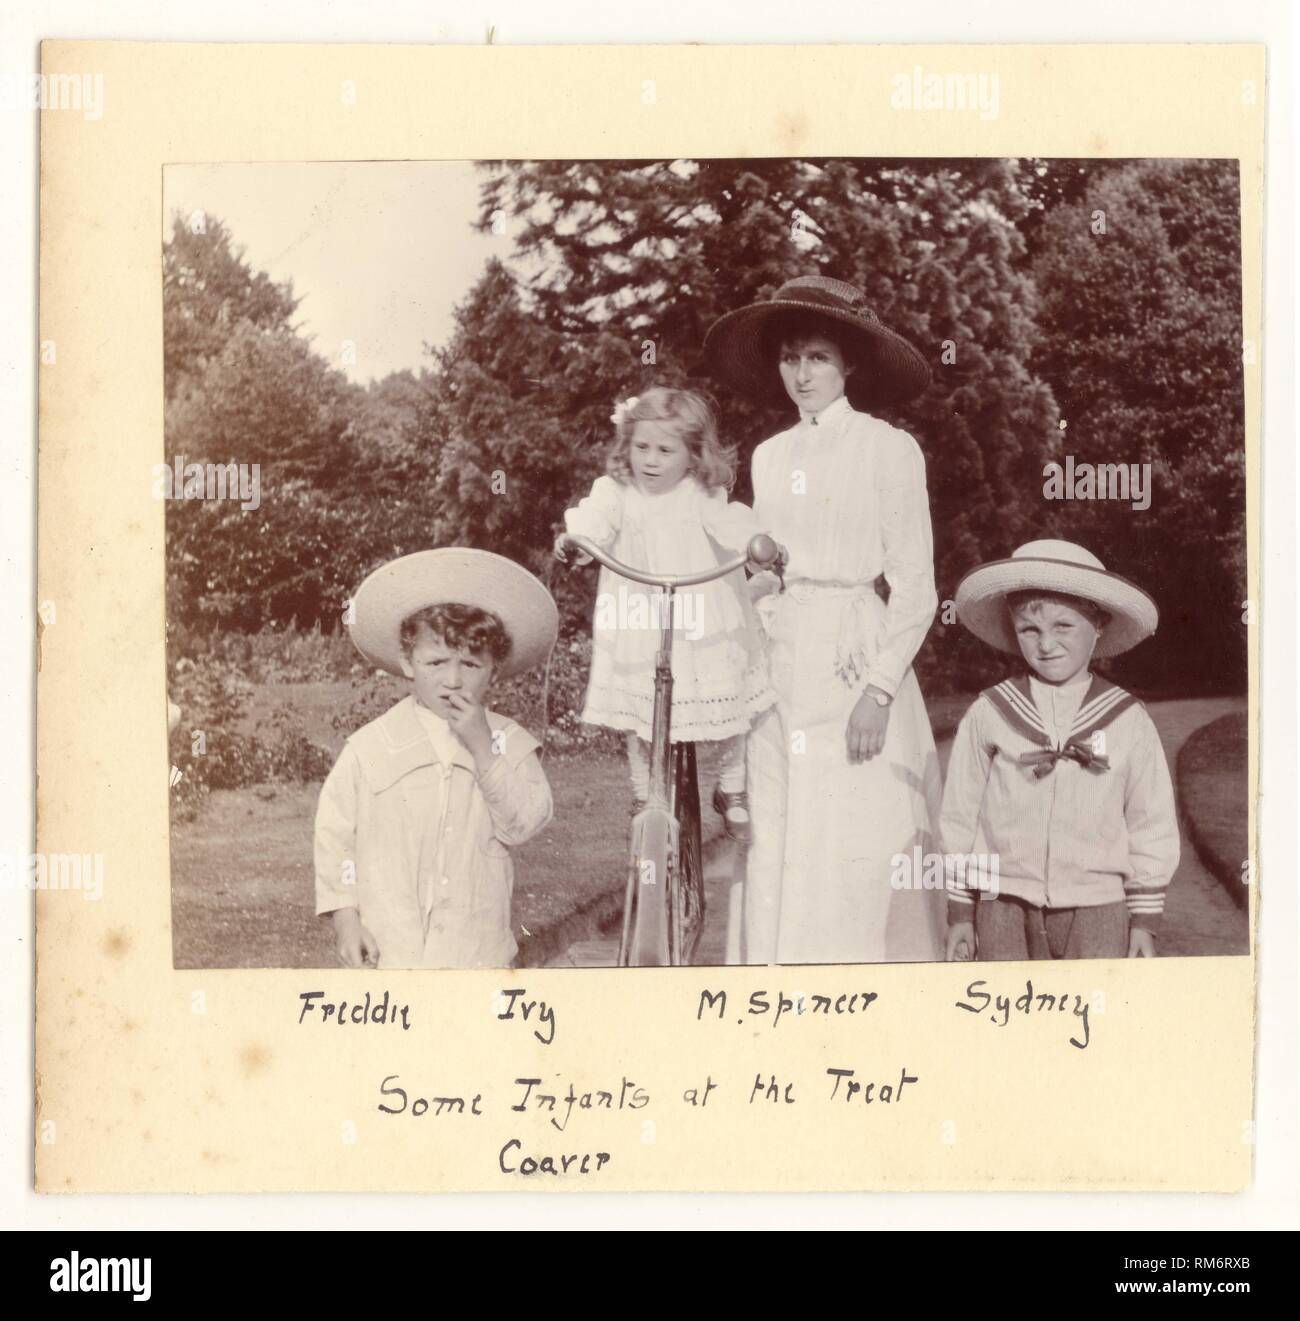 Edwardian photograph of an attractive mother in a white summer blouse and skirt walking with her children in the park or a garden. The youngest child is  balanced on the mother's bicycle,the boys wear fashionable sailor suits and straw hats, circa 1910, U.K. - Stock Image